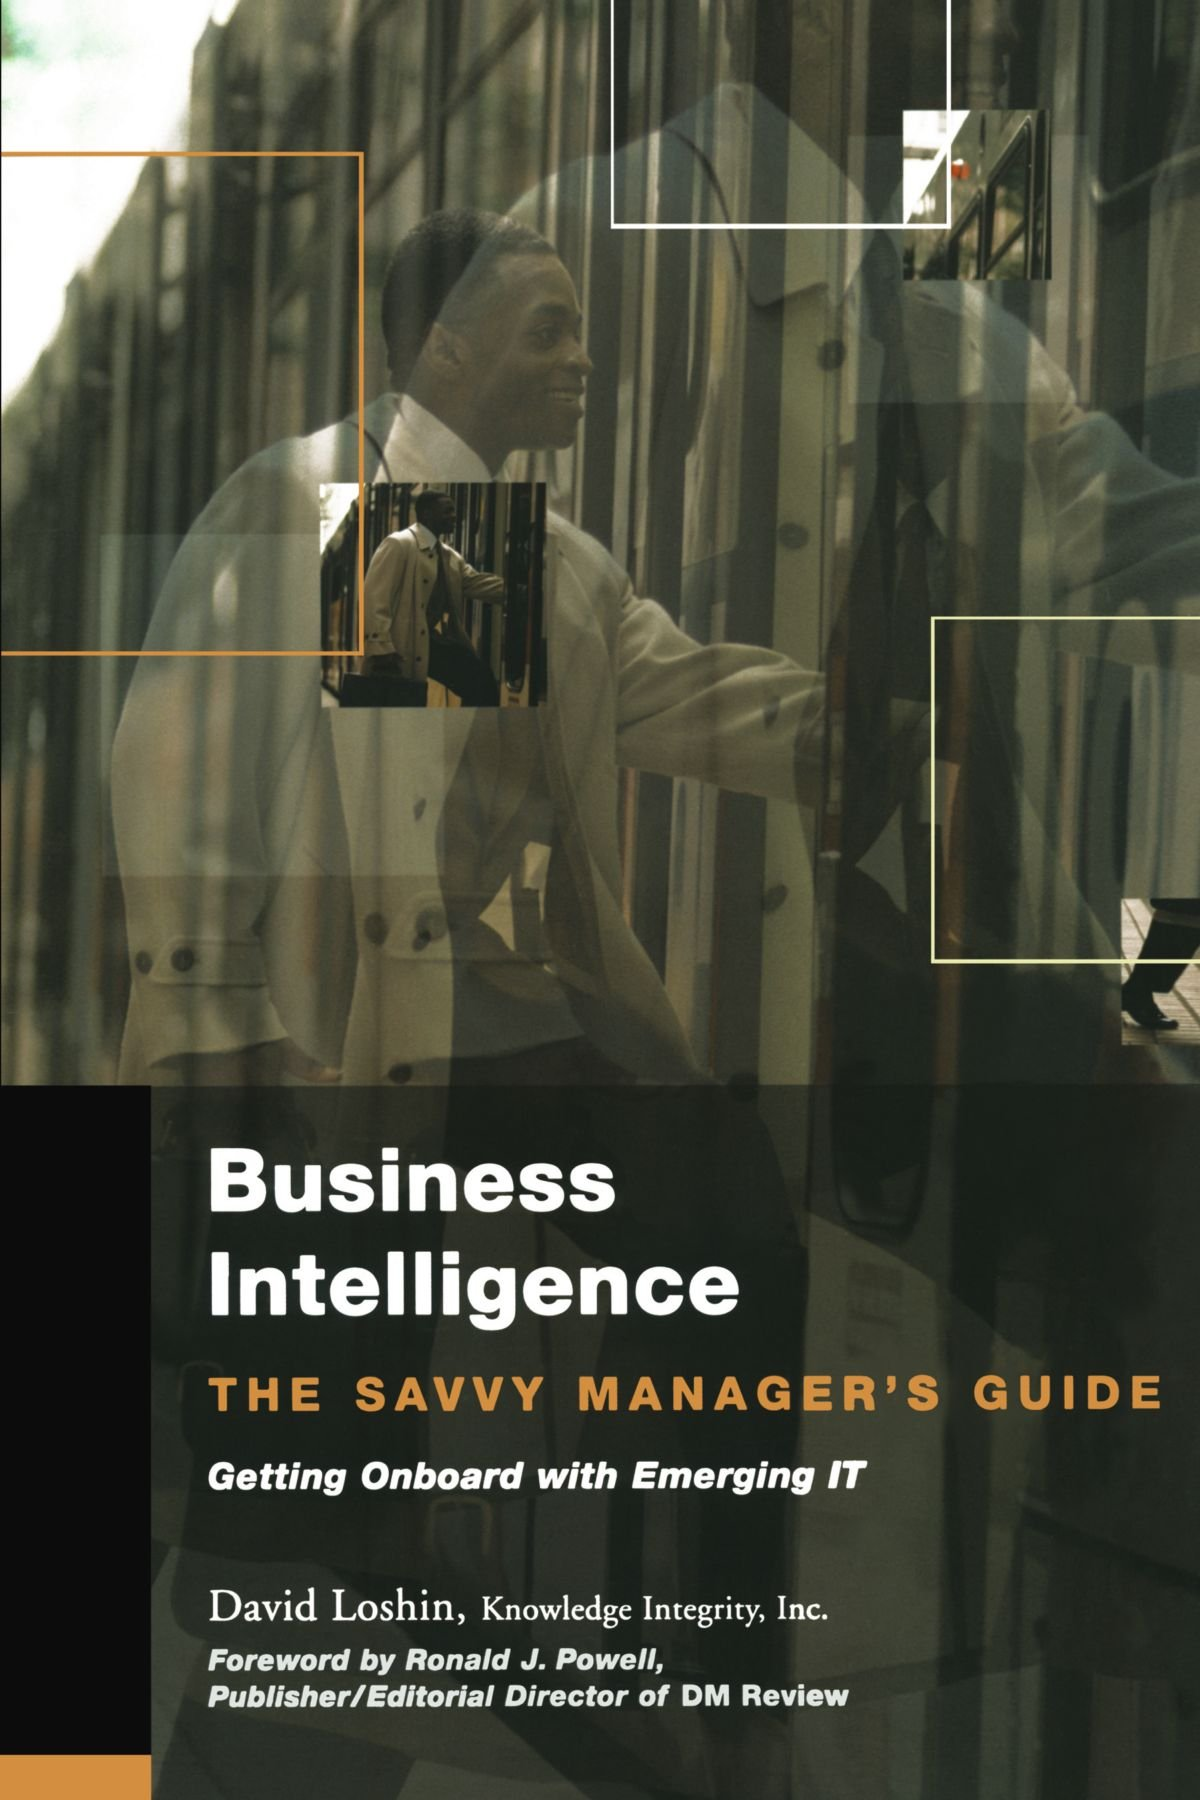 Business Intelligence: The Savvy Manager's Guide (The Savvy Manager's Guides) por David Loshin